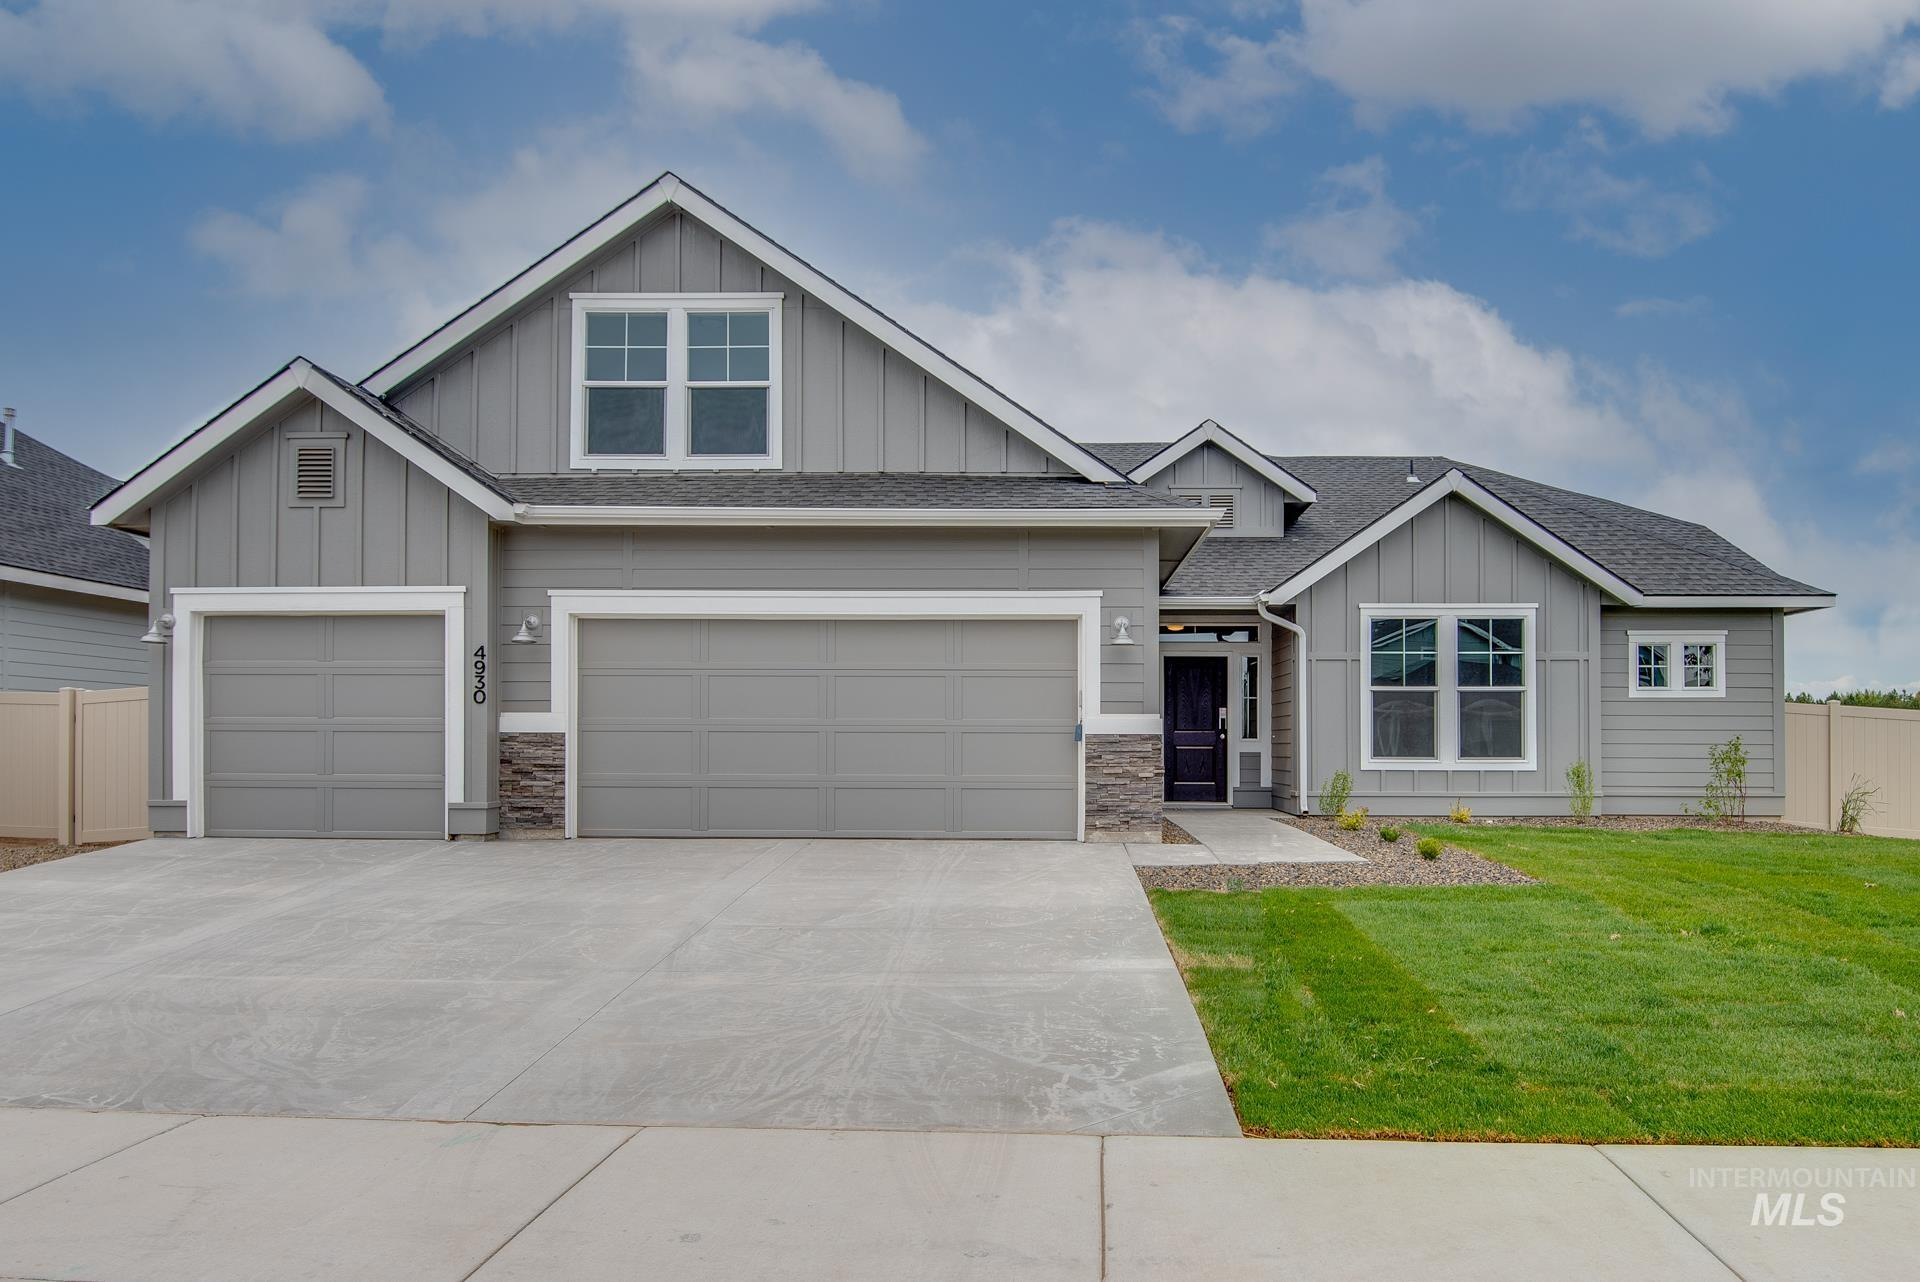 4930 W Sands Basin Dr Property Photo - Meridian, ID real estate listing